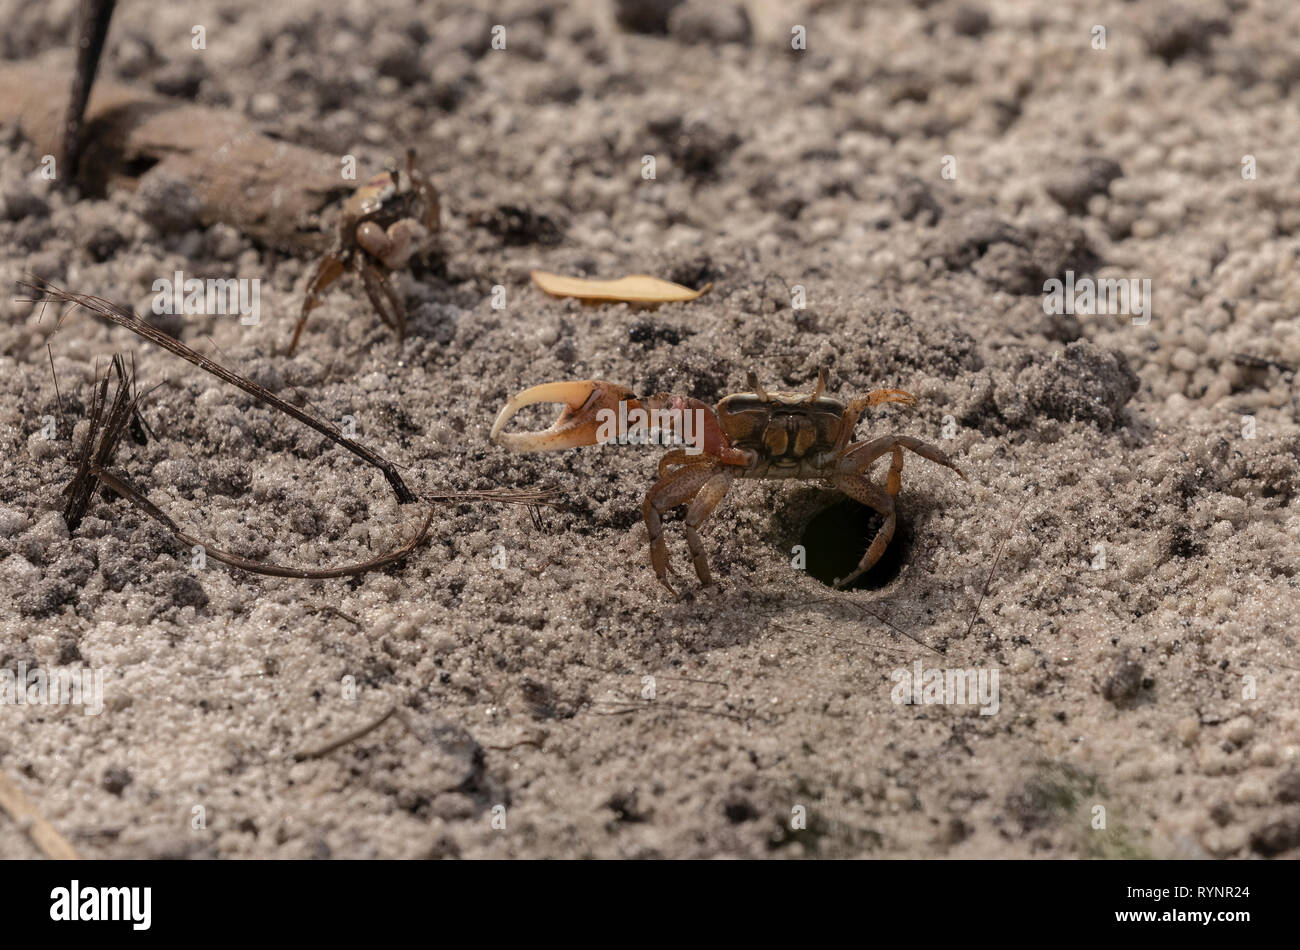 Male Gulf Coast Fiddler Crab, Uca panacea, feeding and displaying by its burrow on mudflats, Gulf of Mexico, Florida. Stock Photo